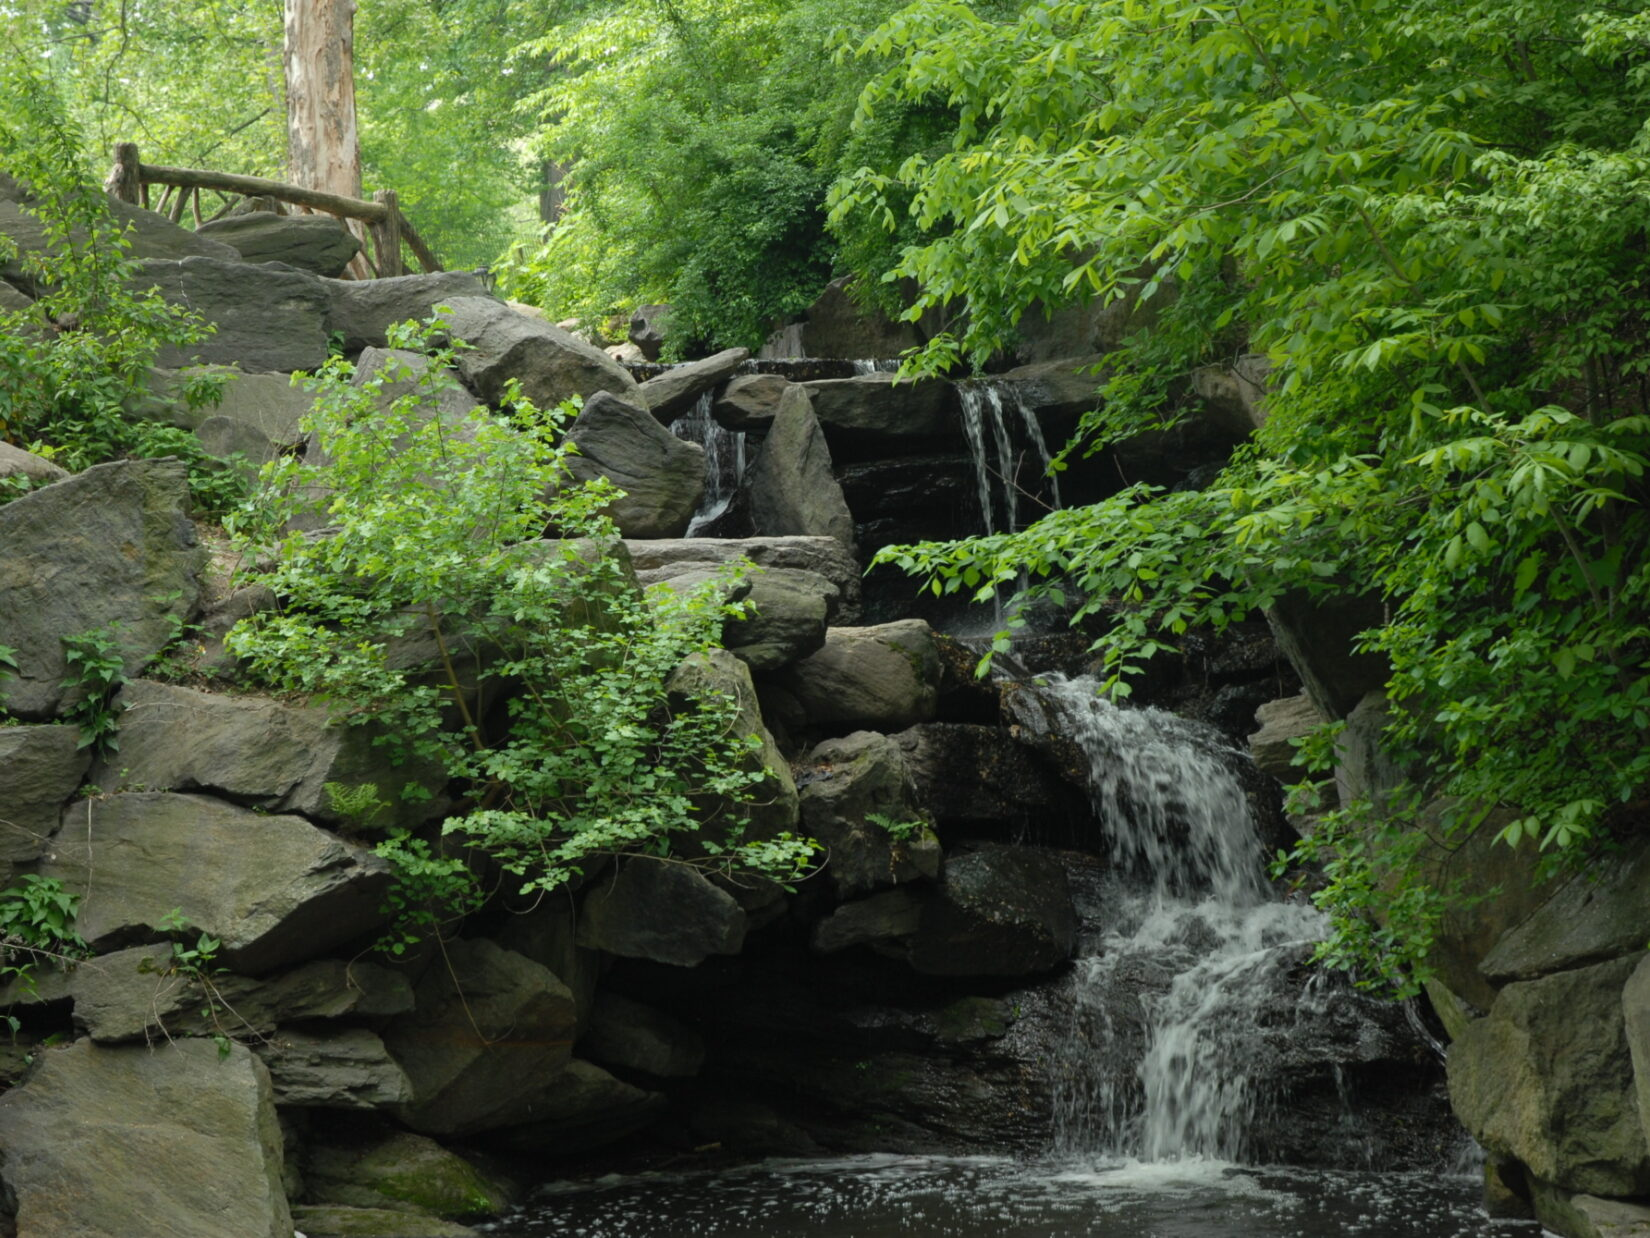 Rustic fencing can be seen at the top of this small waterfall in the Ravine